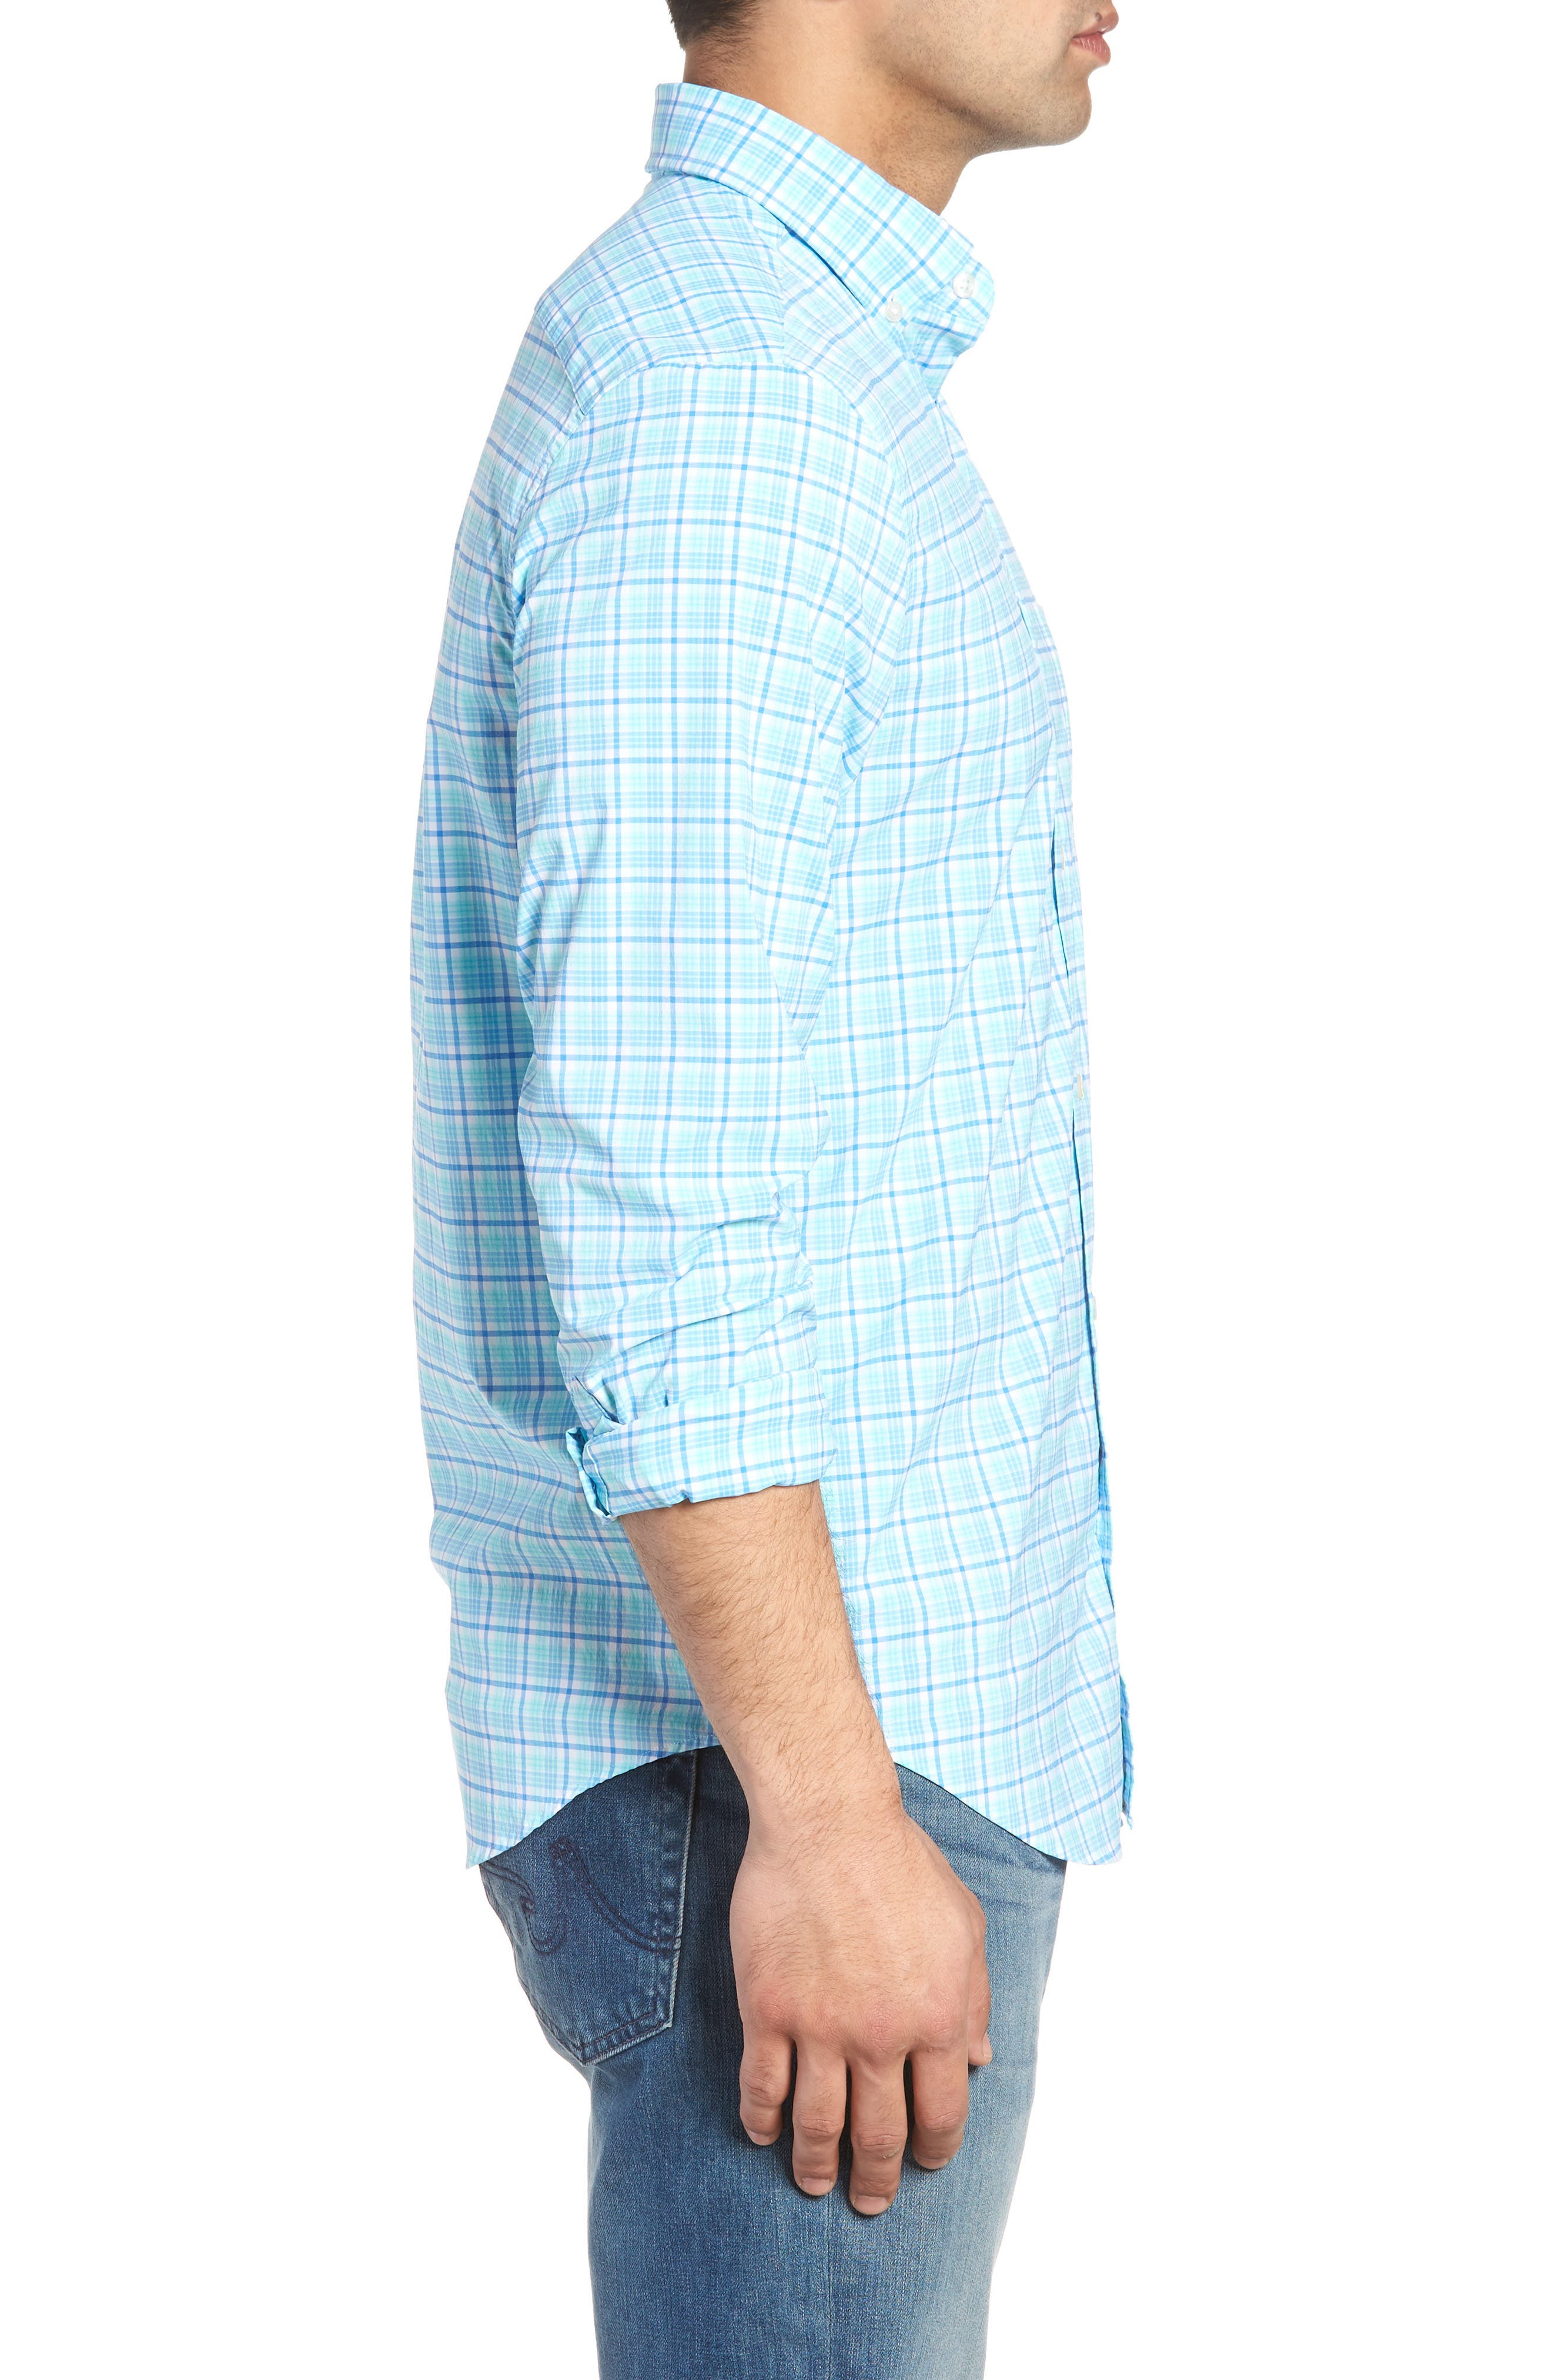 Tipsy Bar Classic Fit Stretch Plaid Sport Shirt,                             Alternate thumbnail 4, color,                             Turquoise